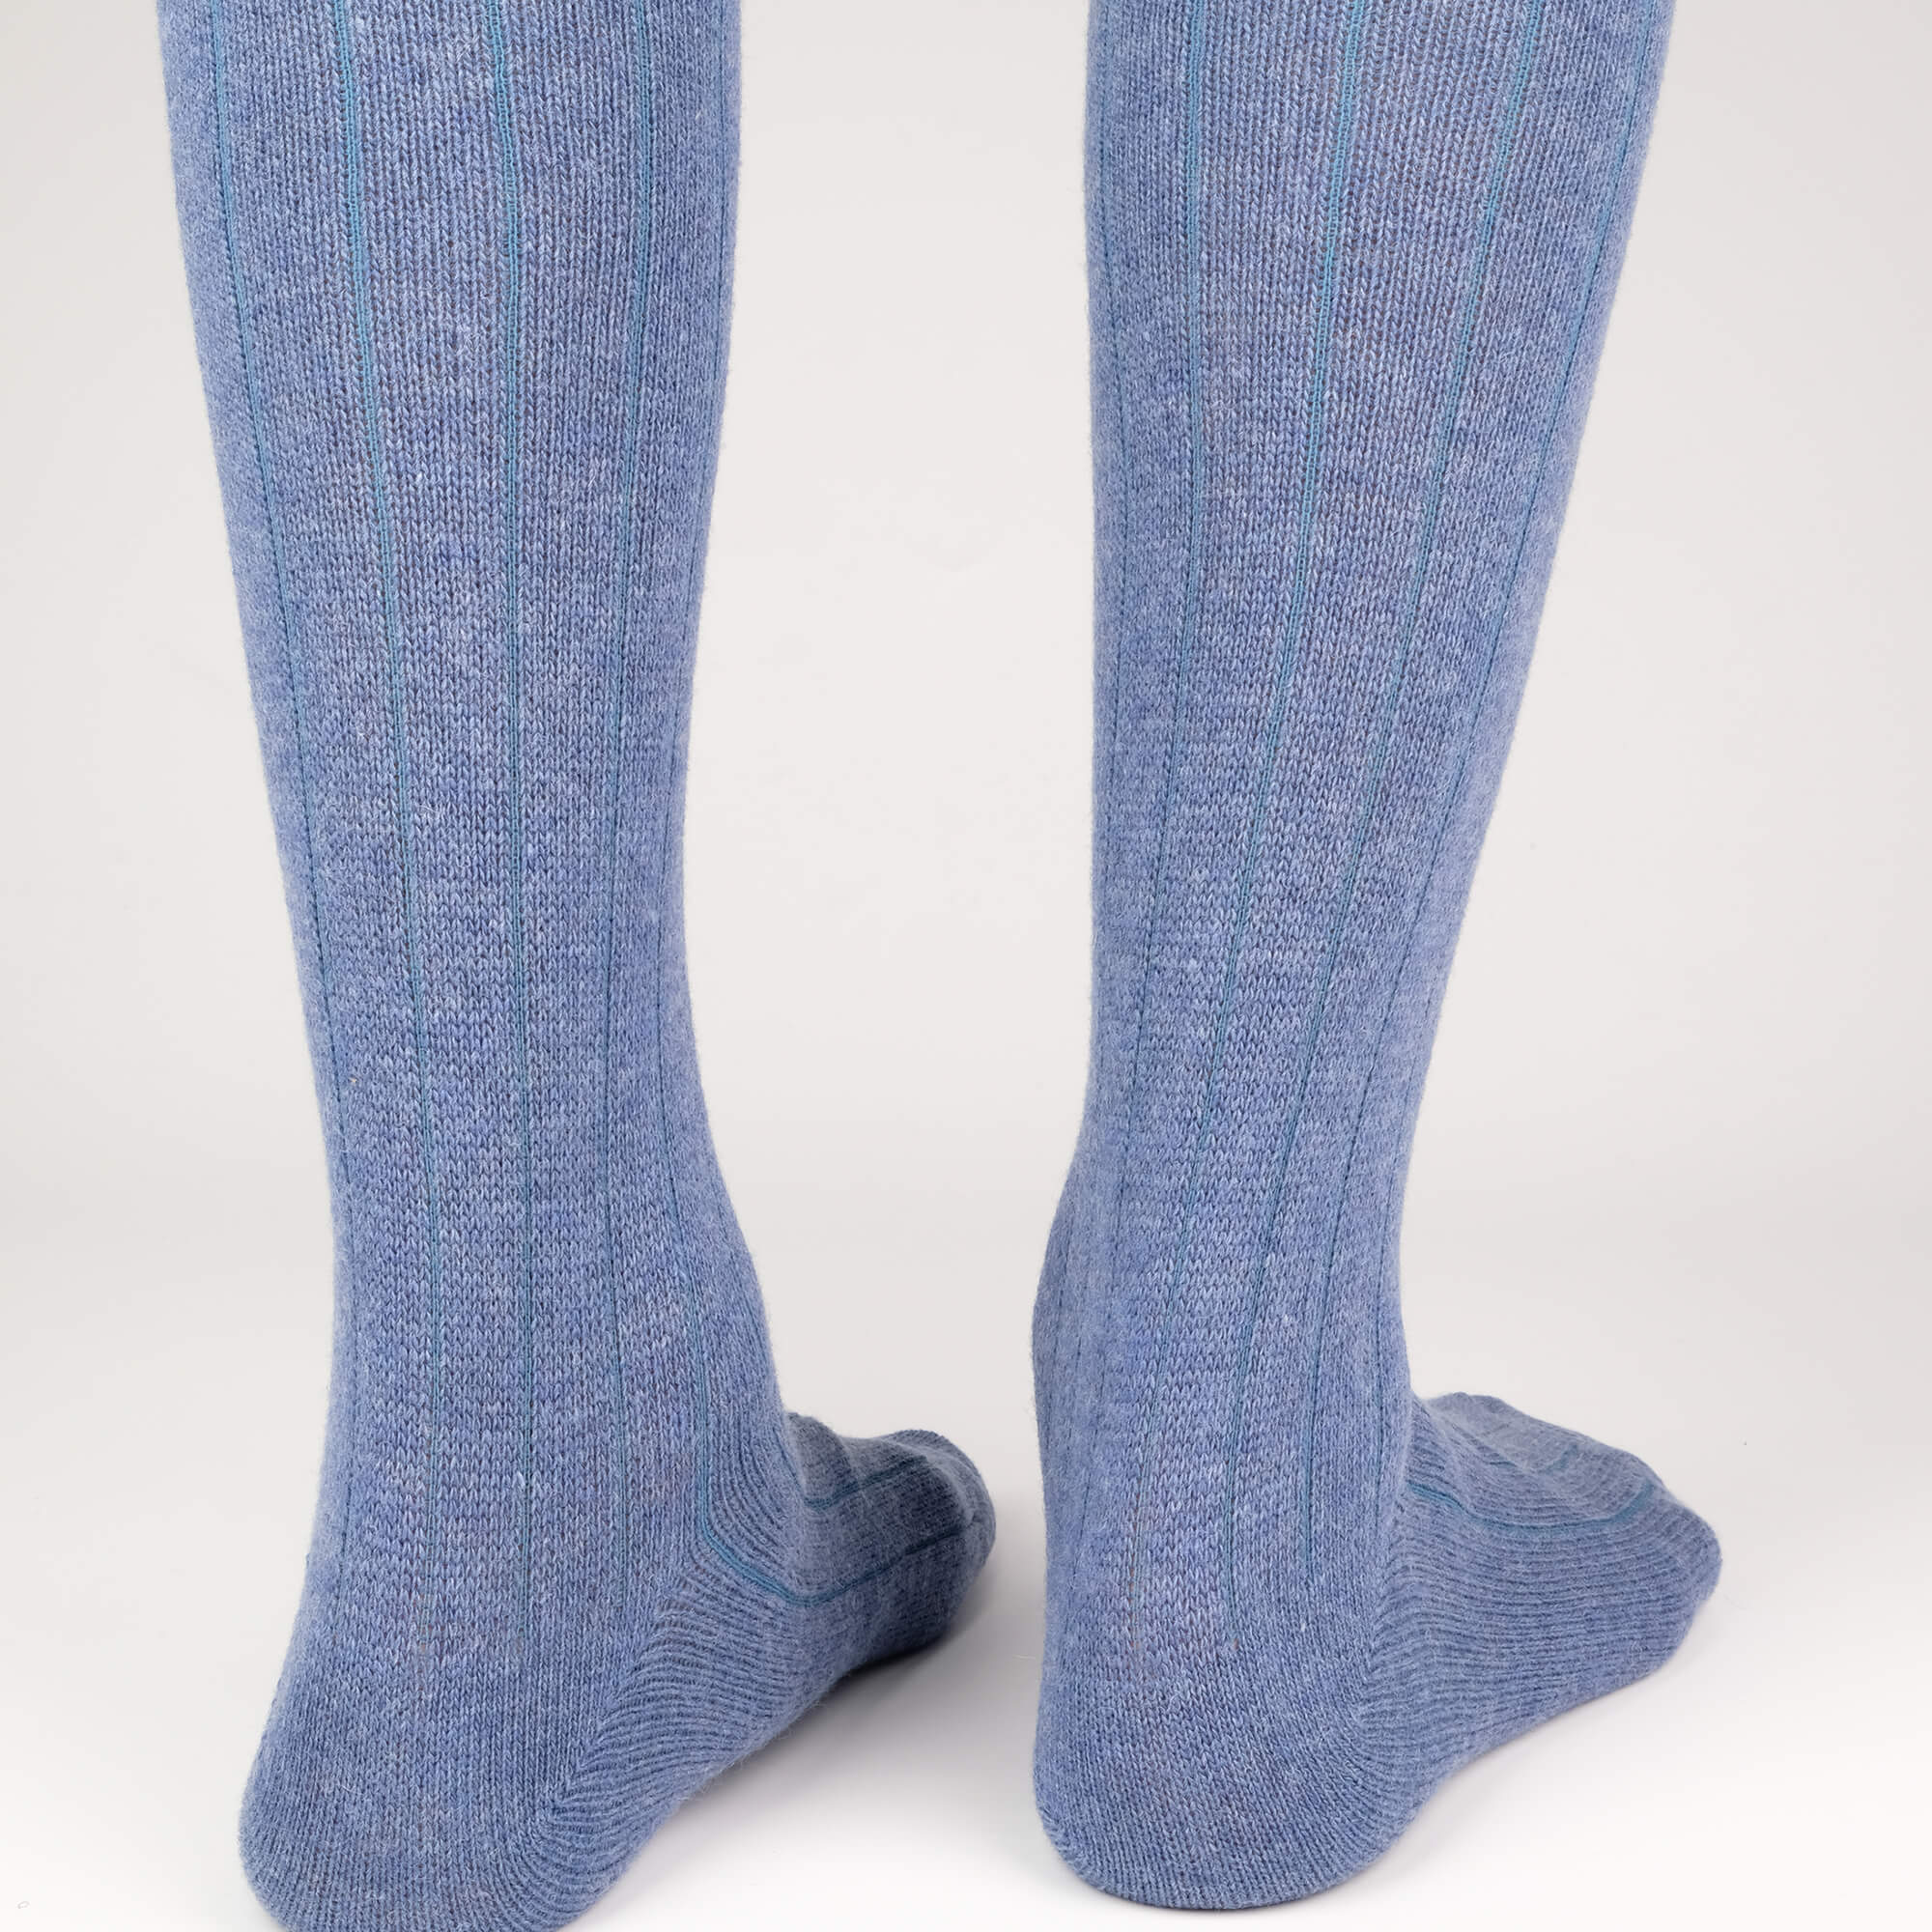 Cashmere Knee High Rib - Blue - Mens Socks | Etiquette Clothiers Global Official